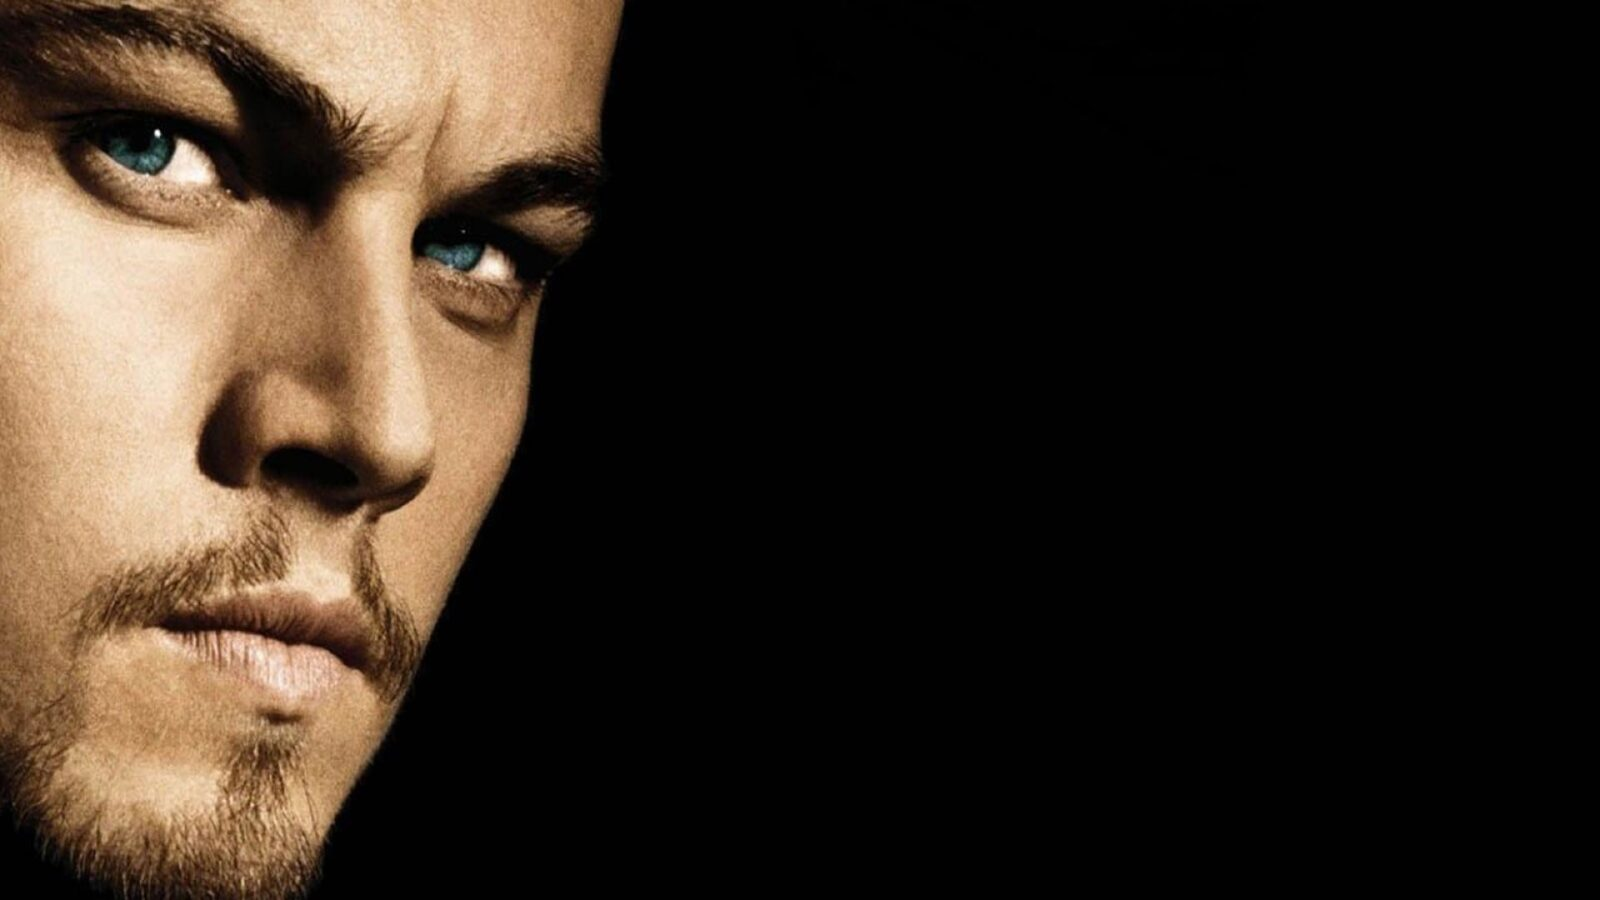 Download Wallpapers Cars Bikes Leonardo Dicaprio Hd Wallpapers Download